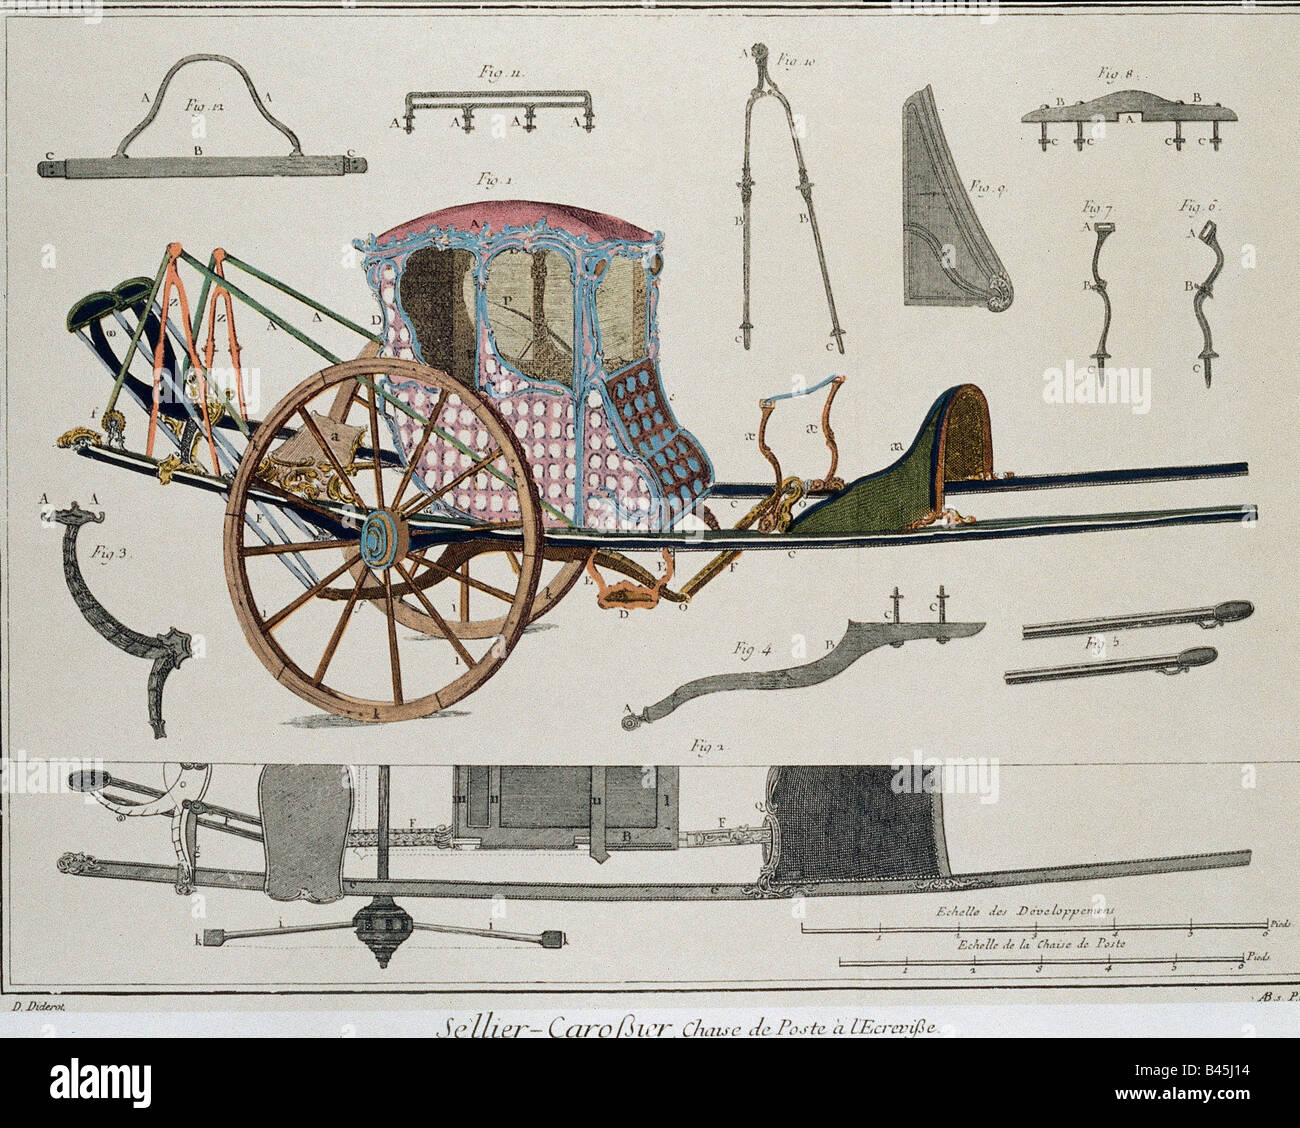 Horse drawn sleigh plans for Carriage plans